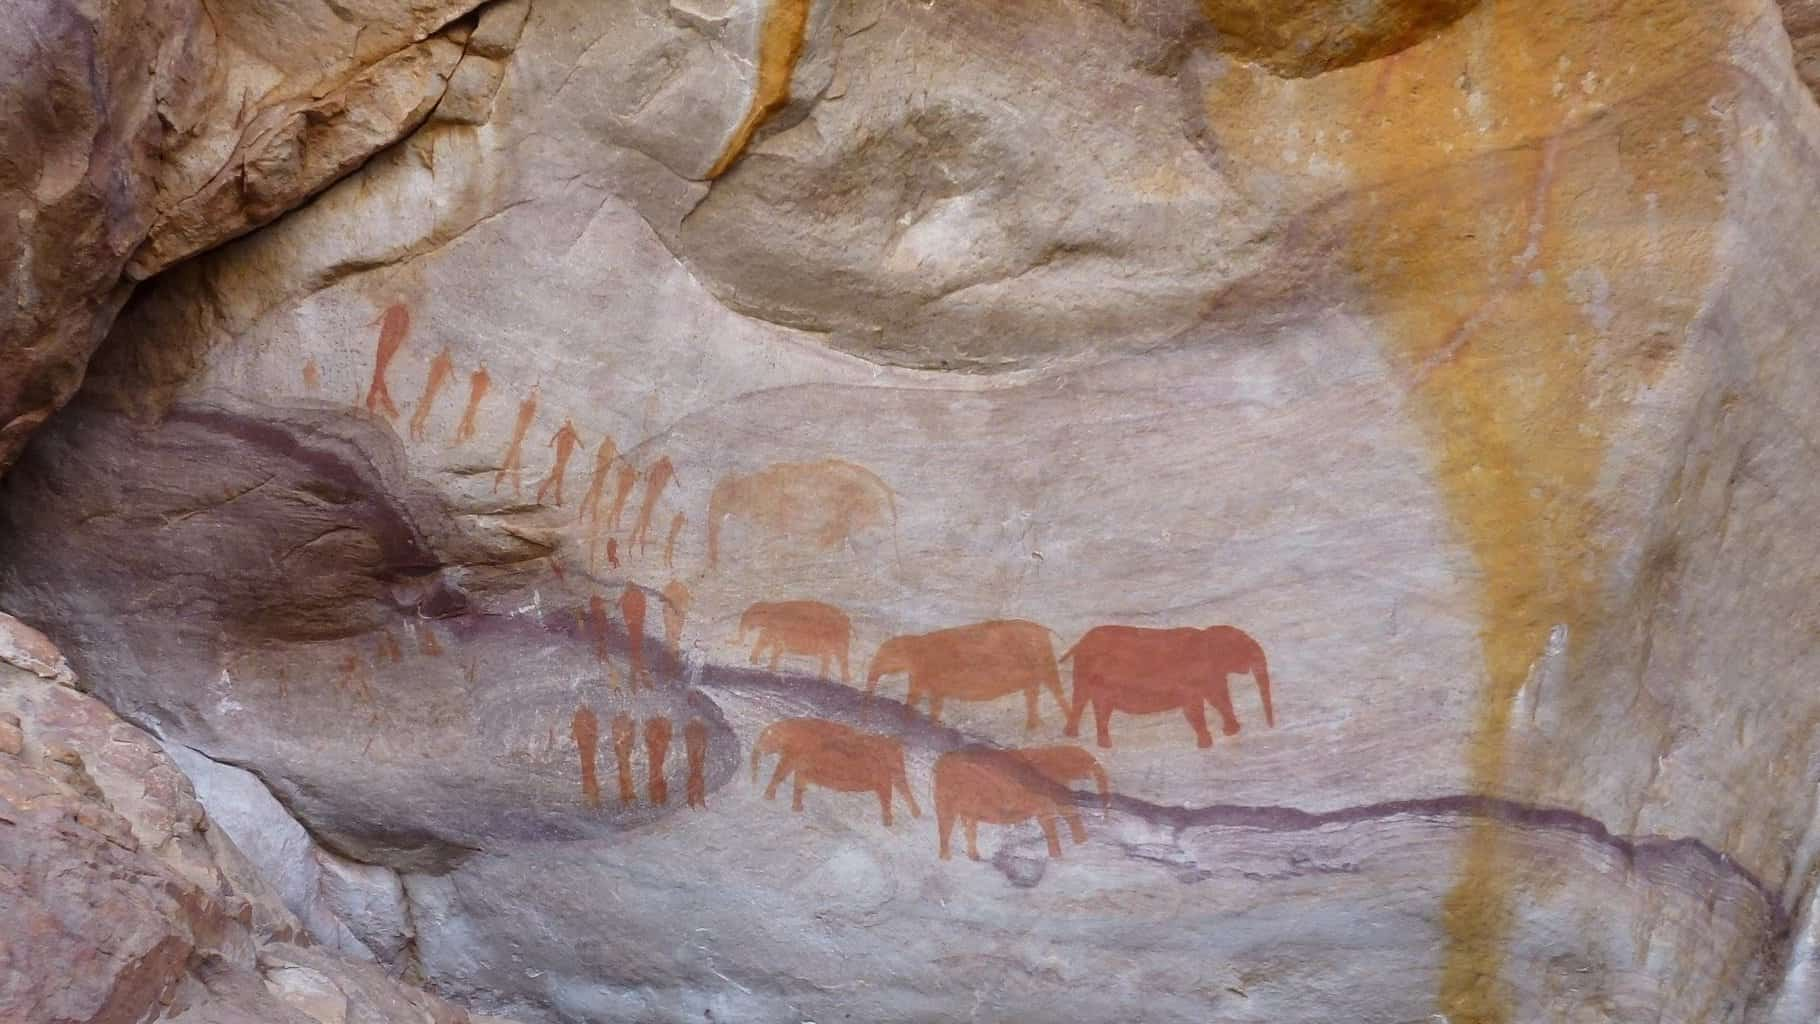 Rock paintings of Elephants from the Southwestern Cape, South Africa.